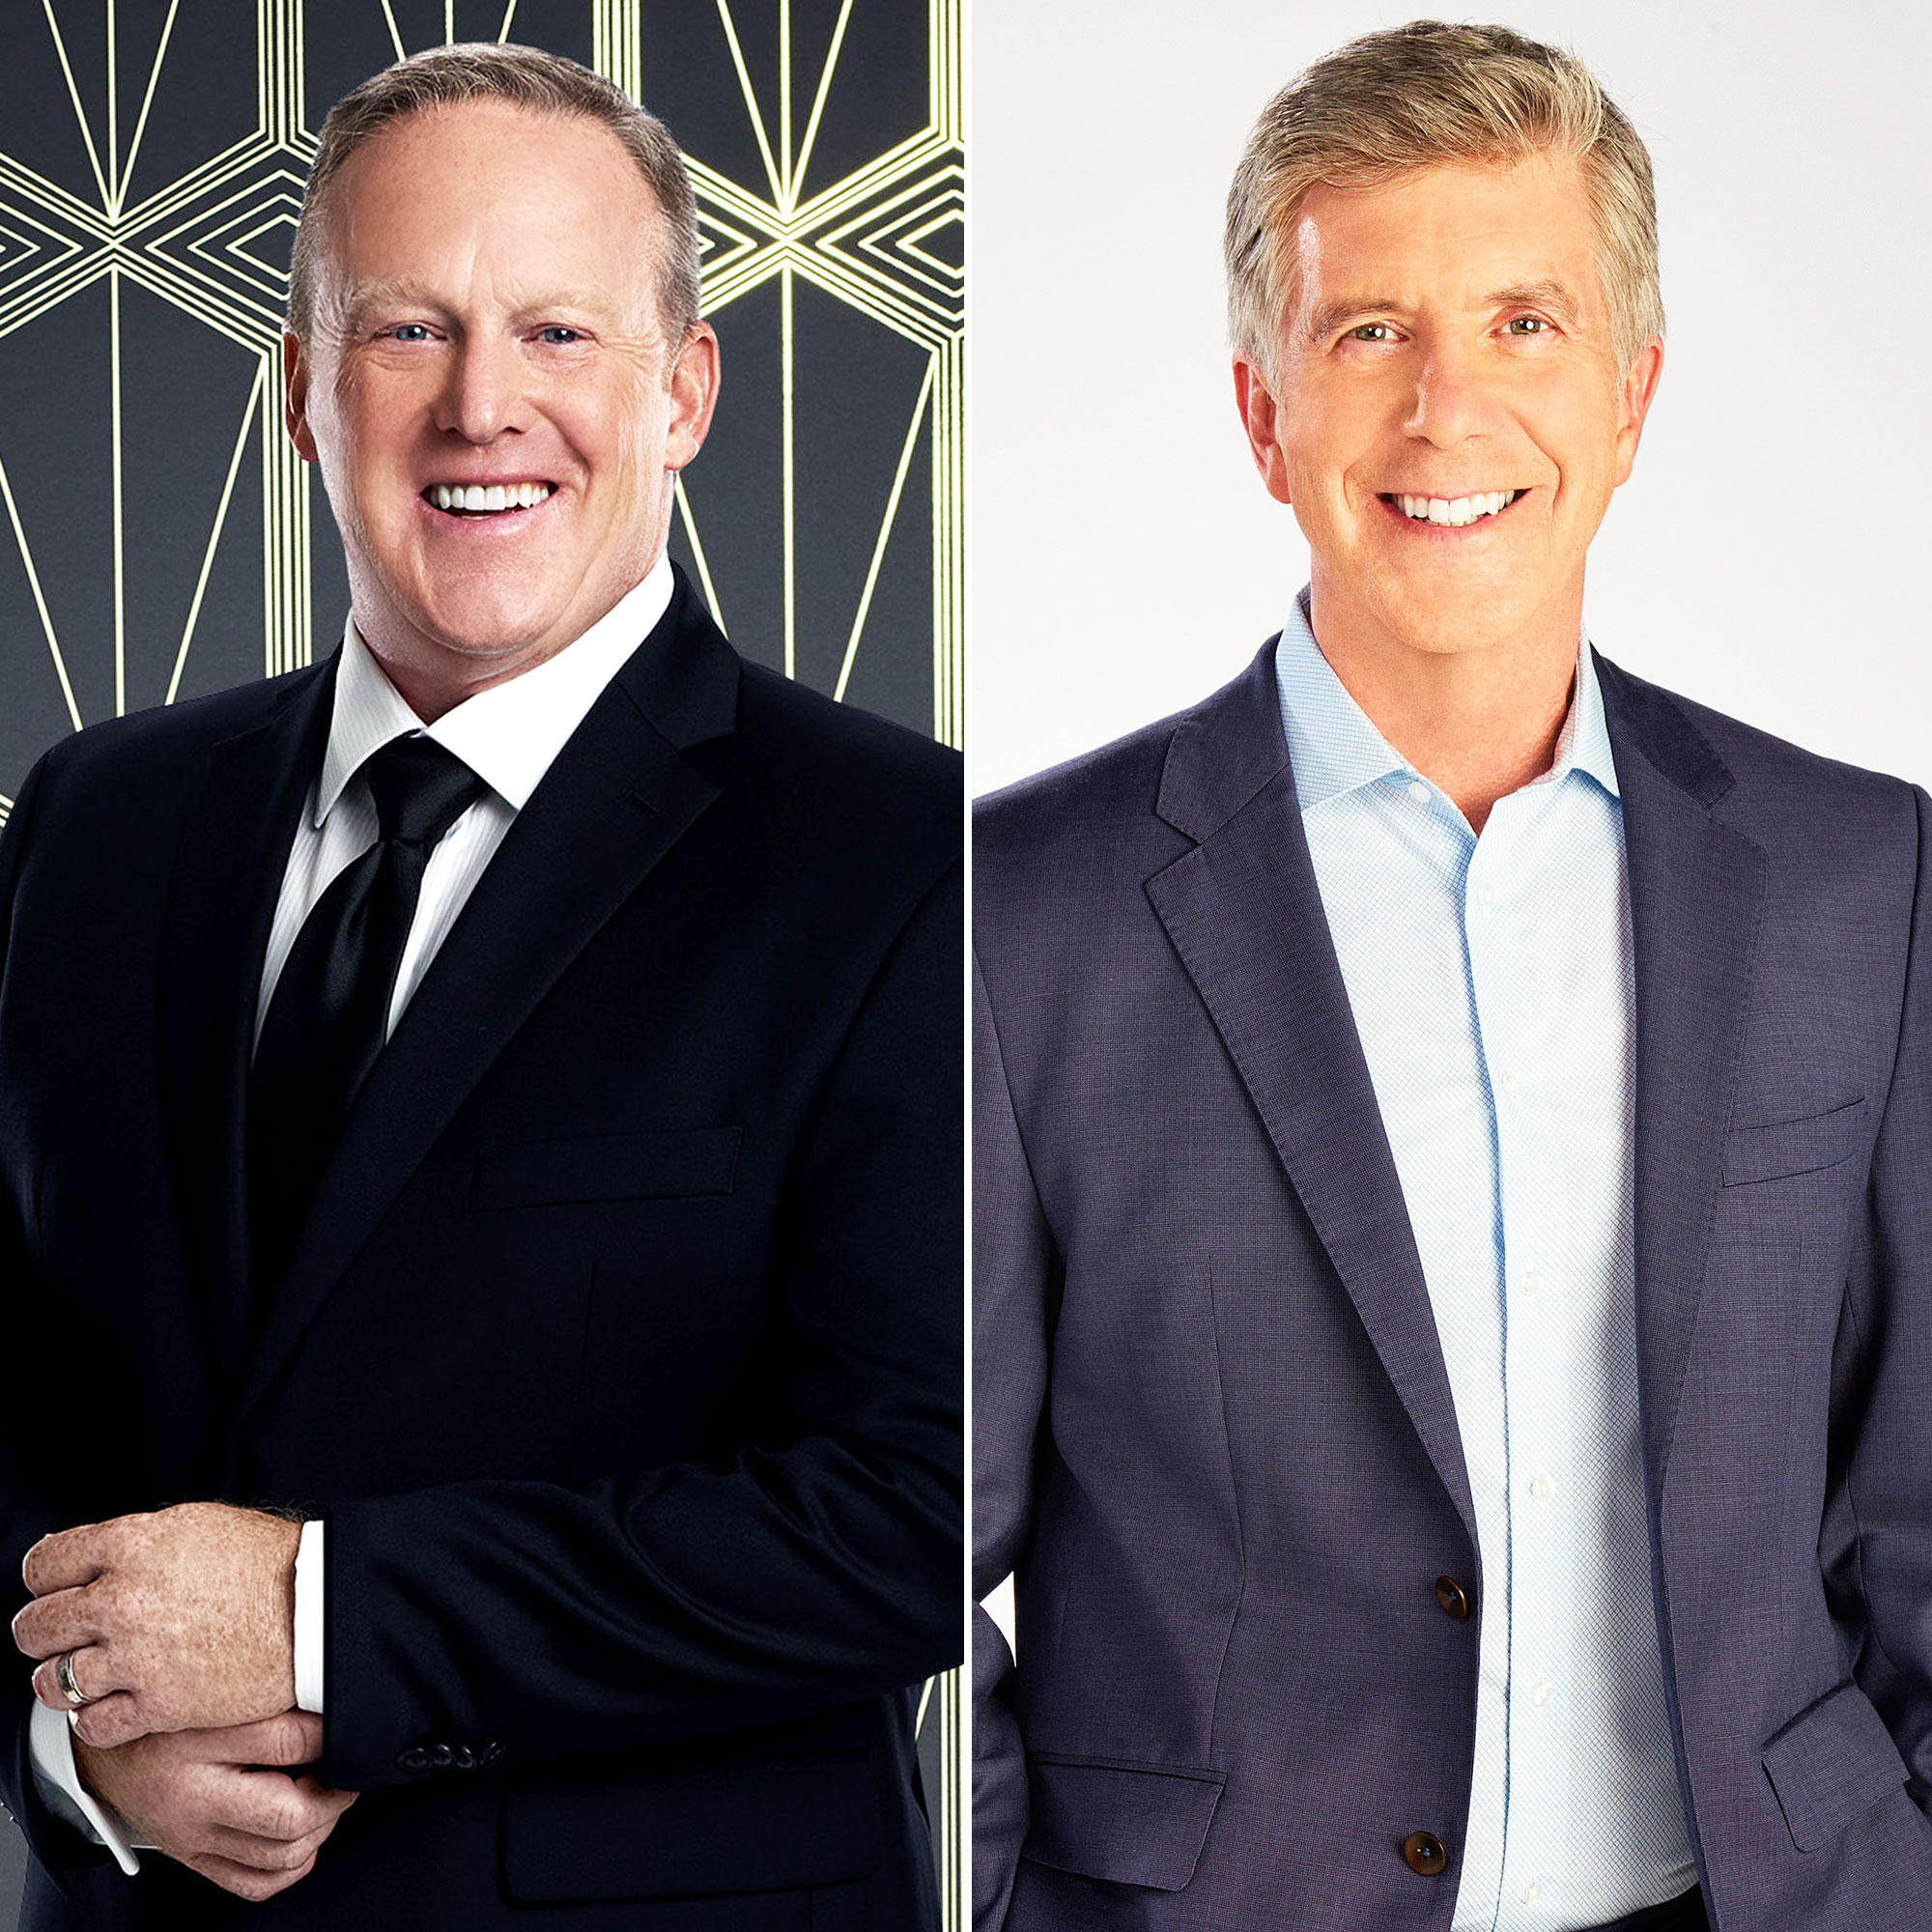 Sean Spicer Bumped Into Tom Bergeron in Hallway After DWTS Casting Controversy